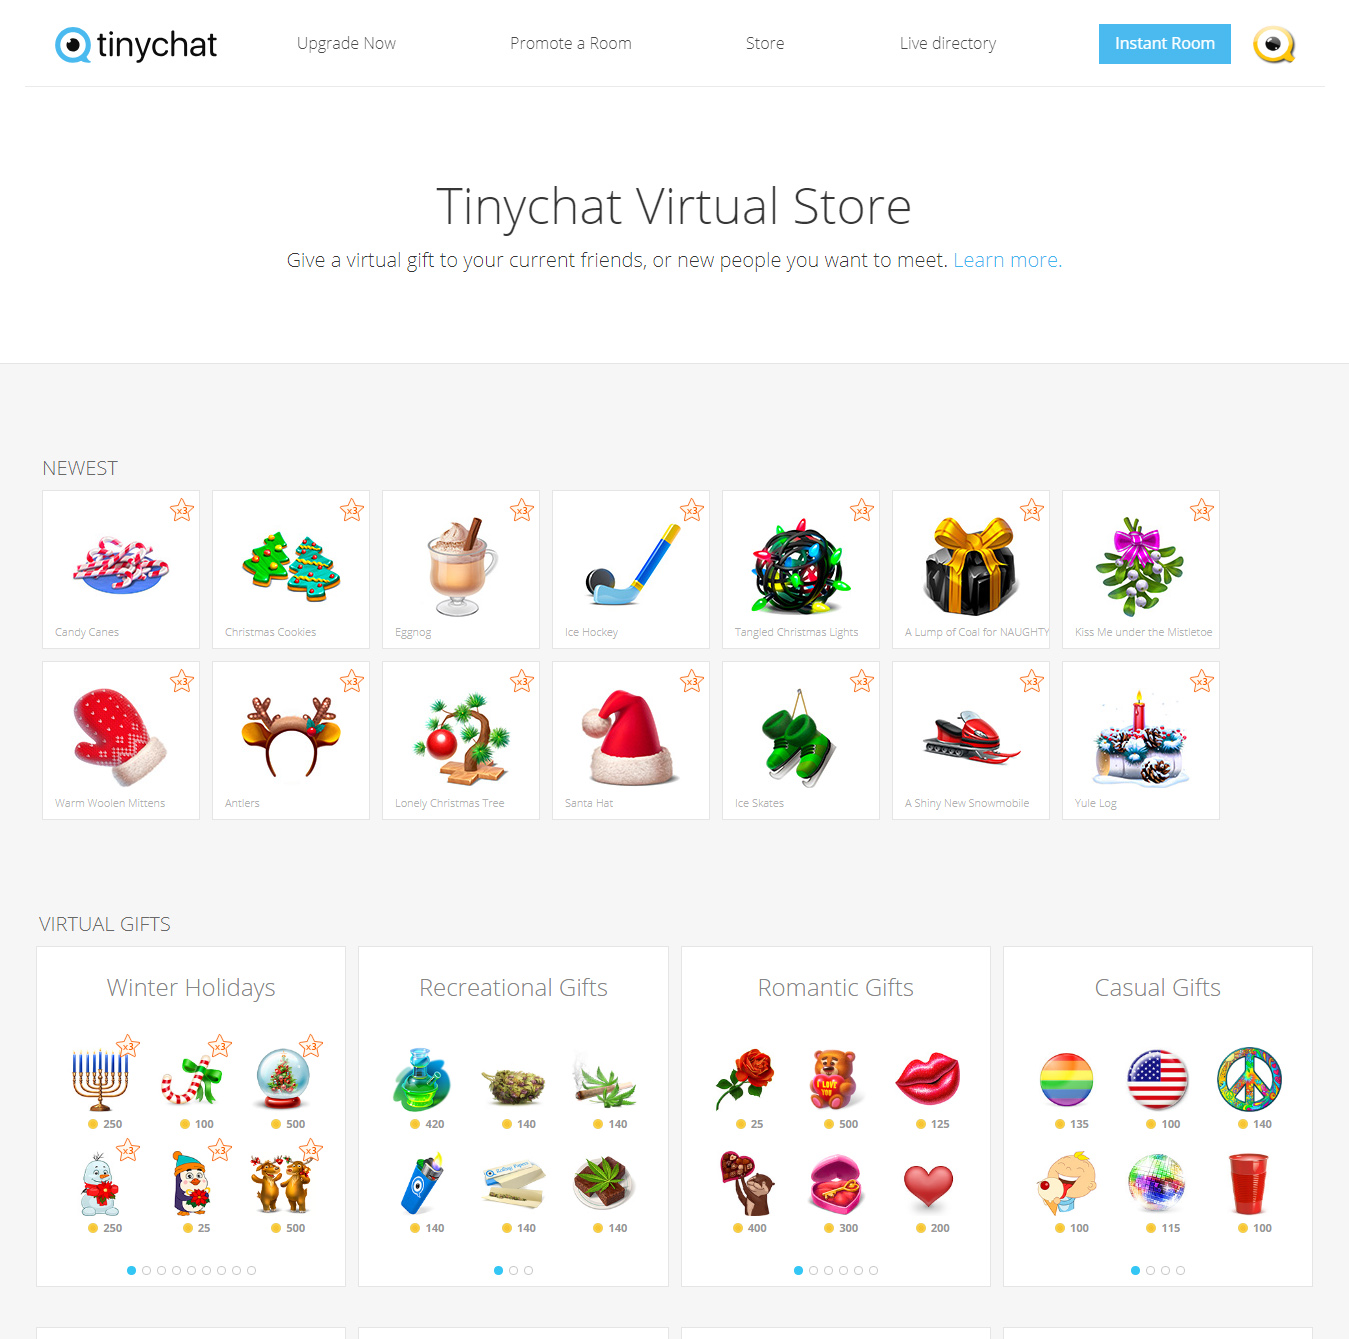 Tinychat Virtual Store